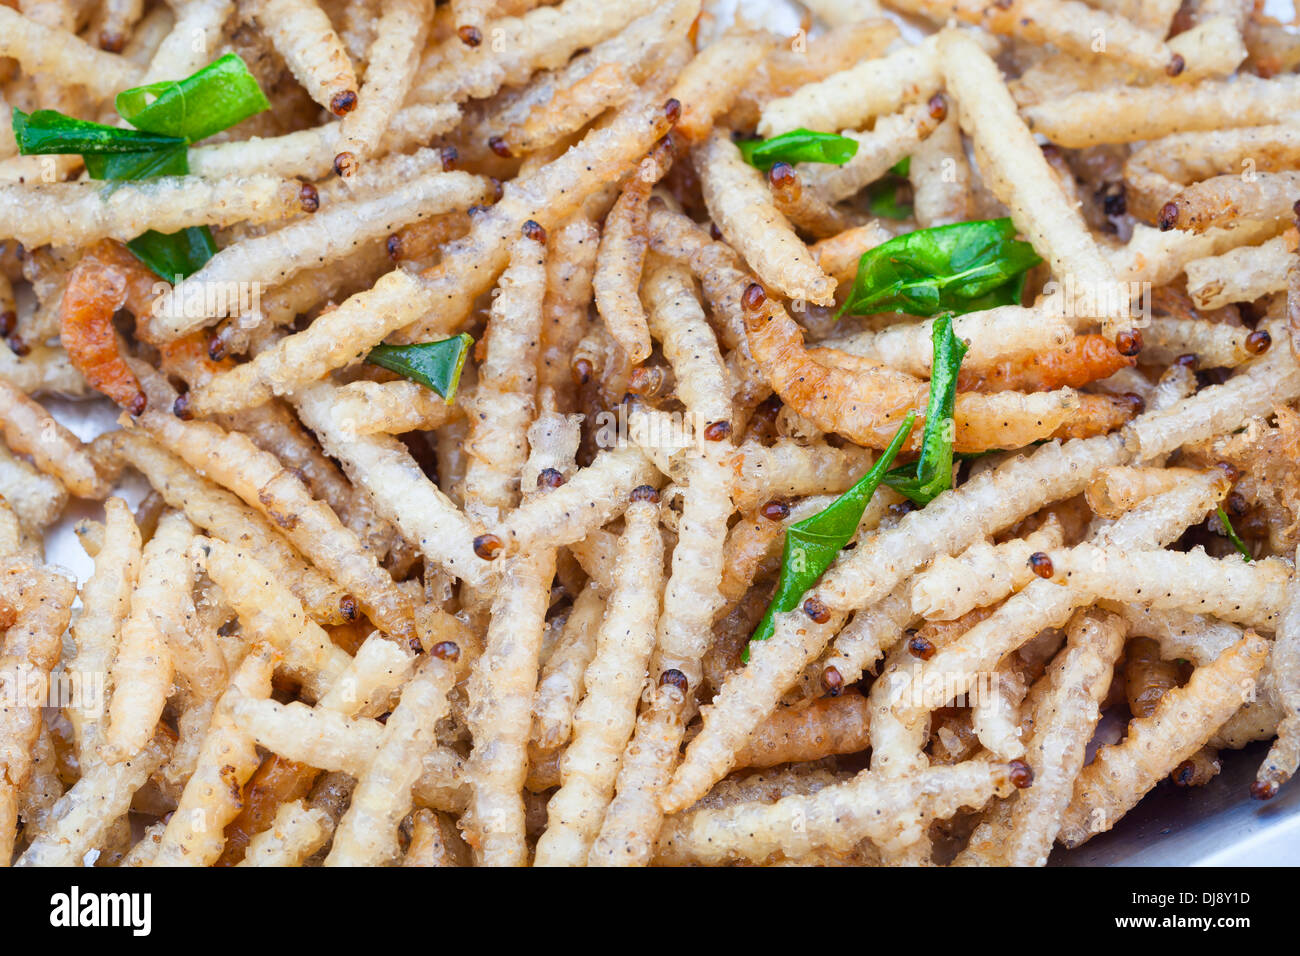 Deep fried bamboo worms garnished with scallion leaves, Thailand - Stock Image